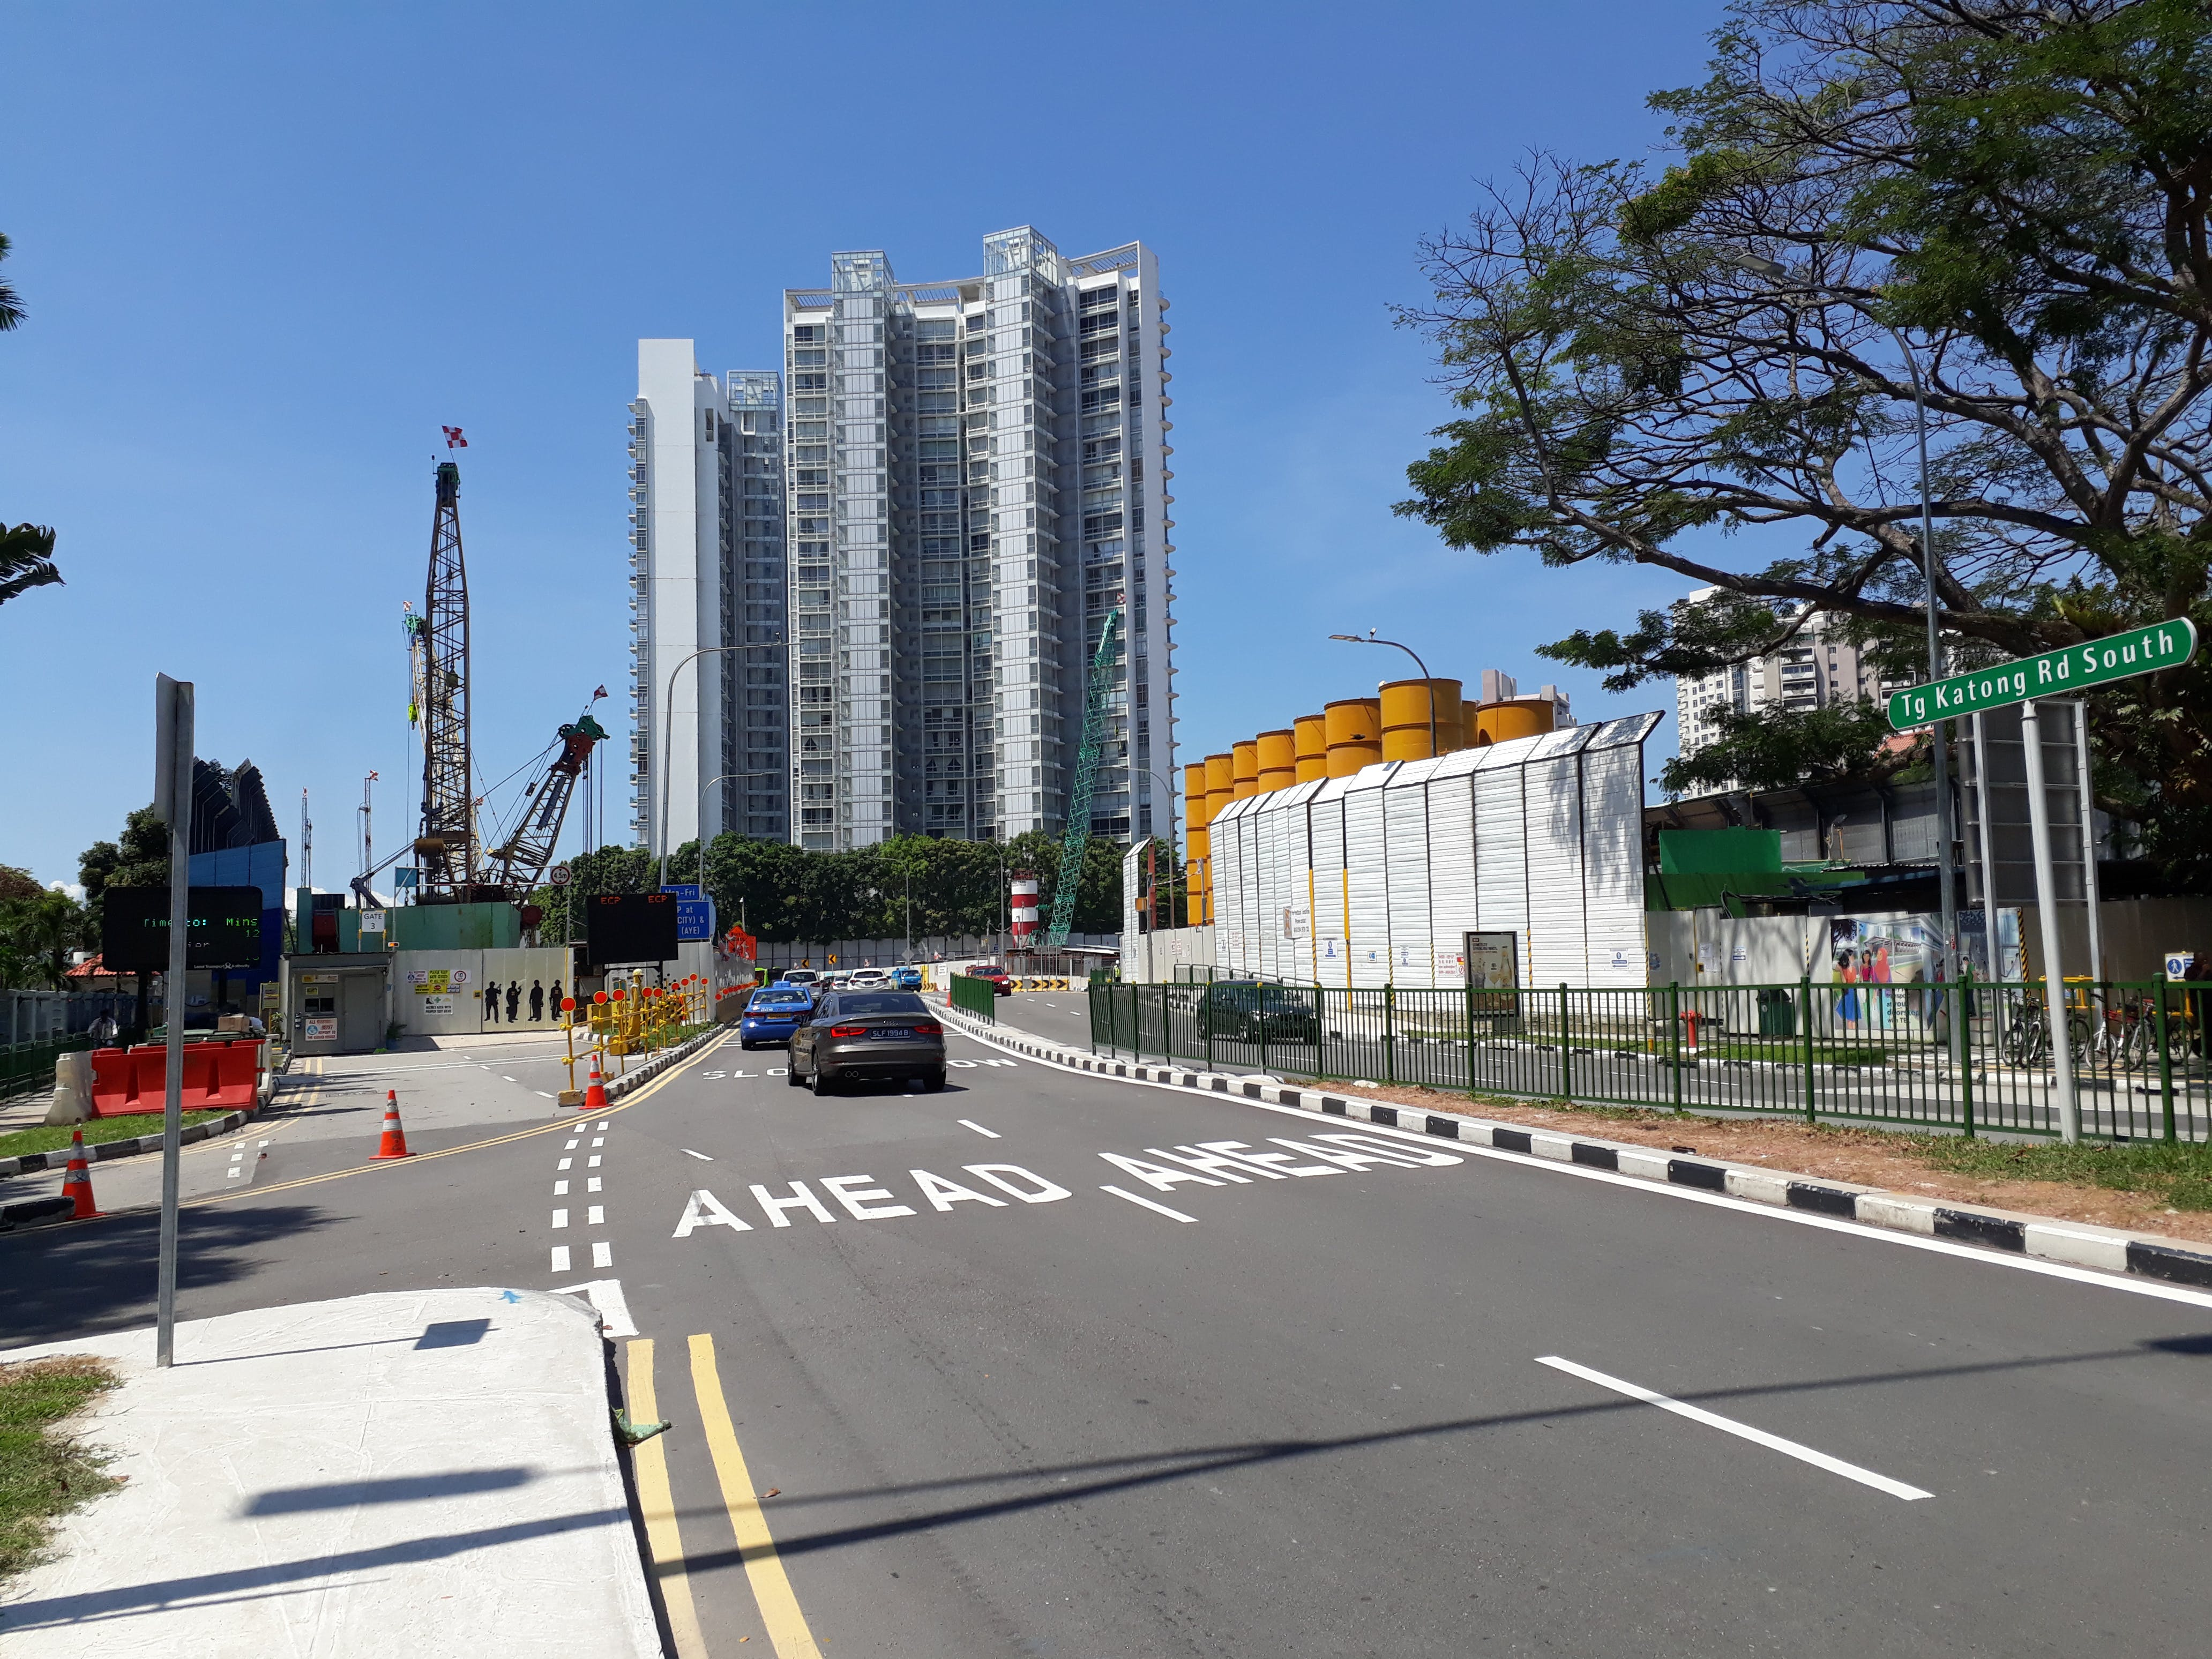 Construction Site of the upcoming Tanjong Katong MRT